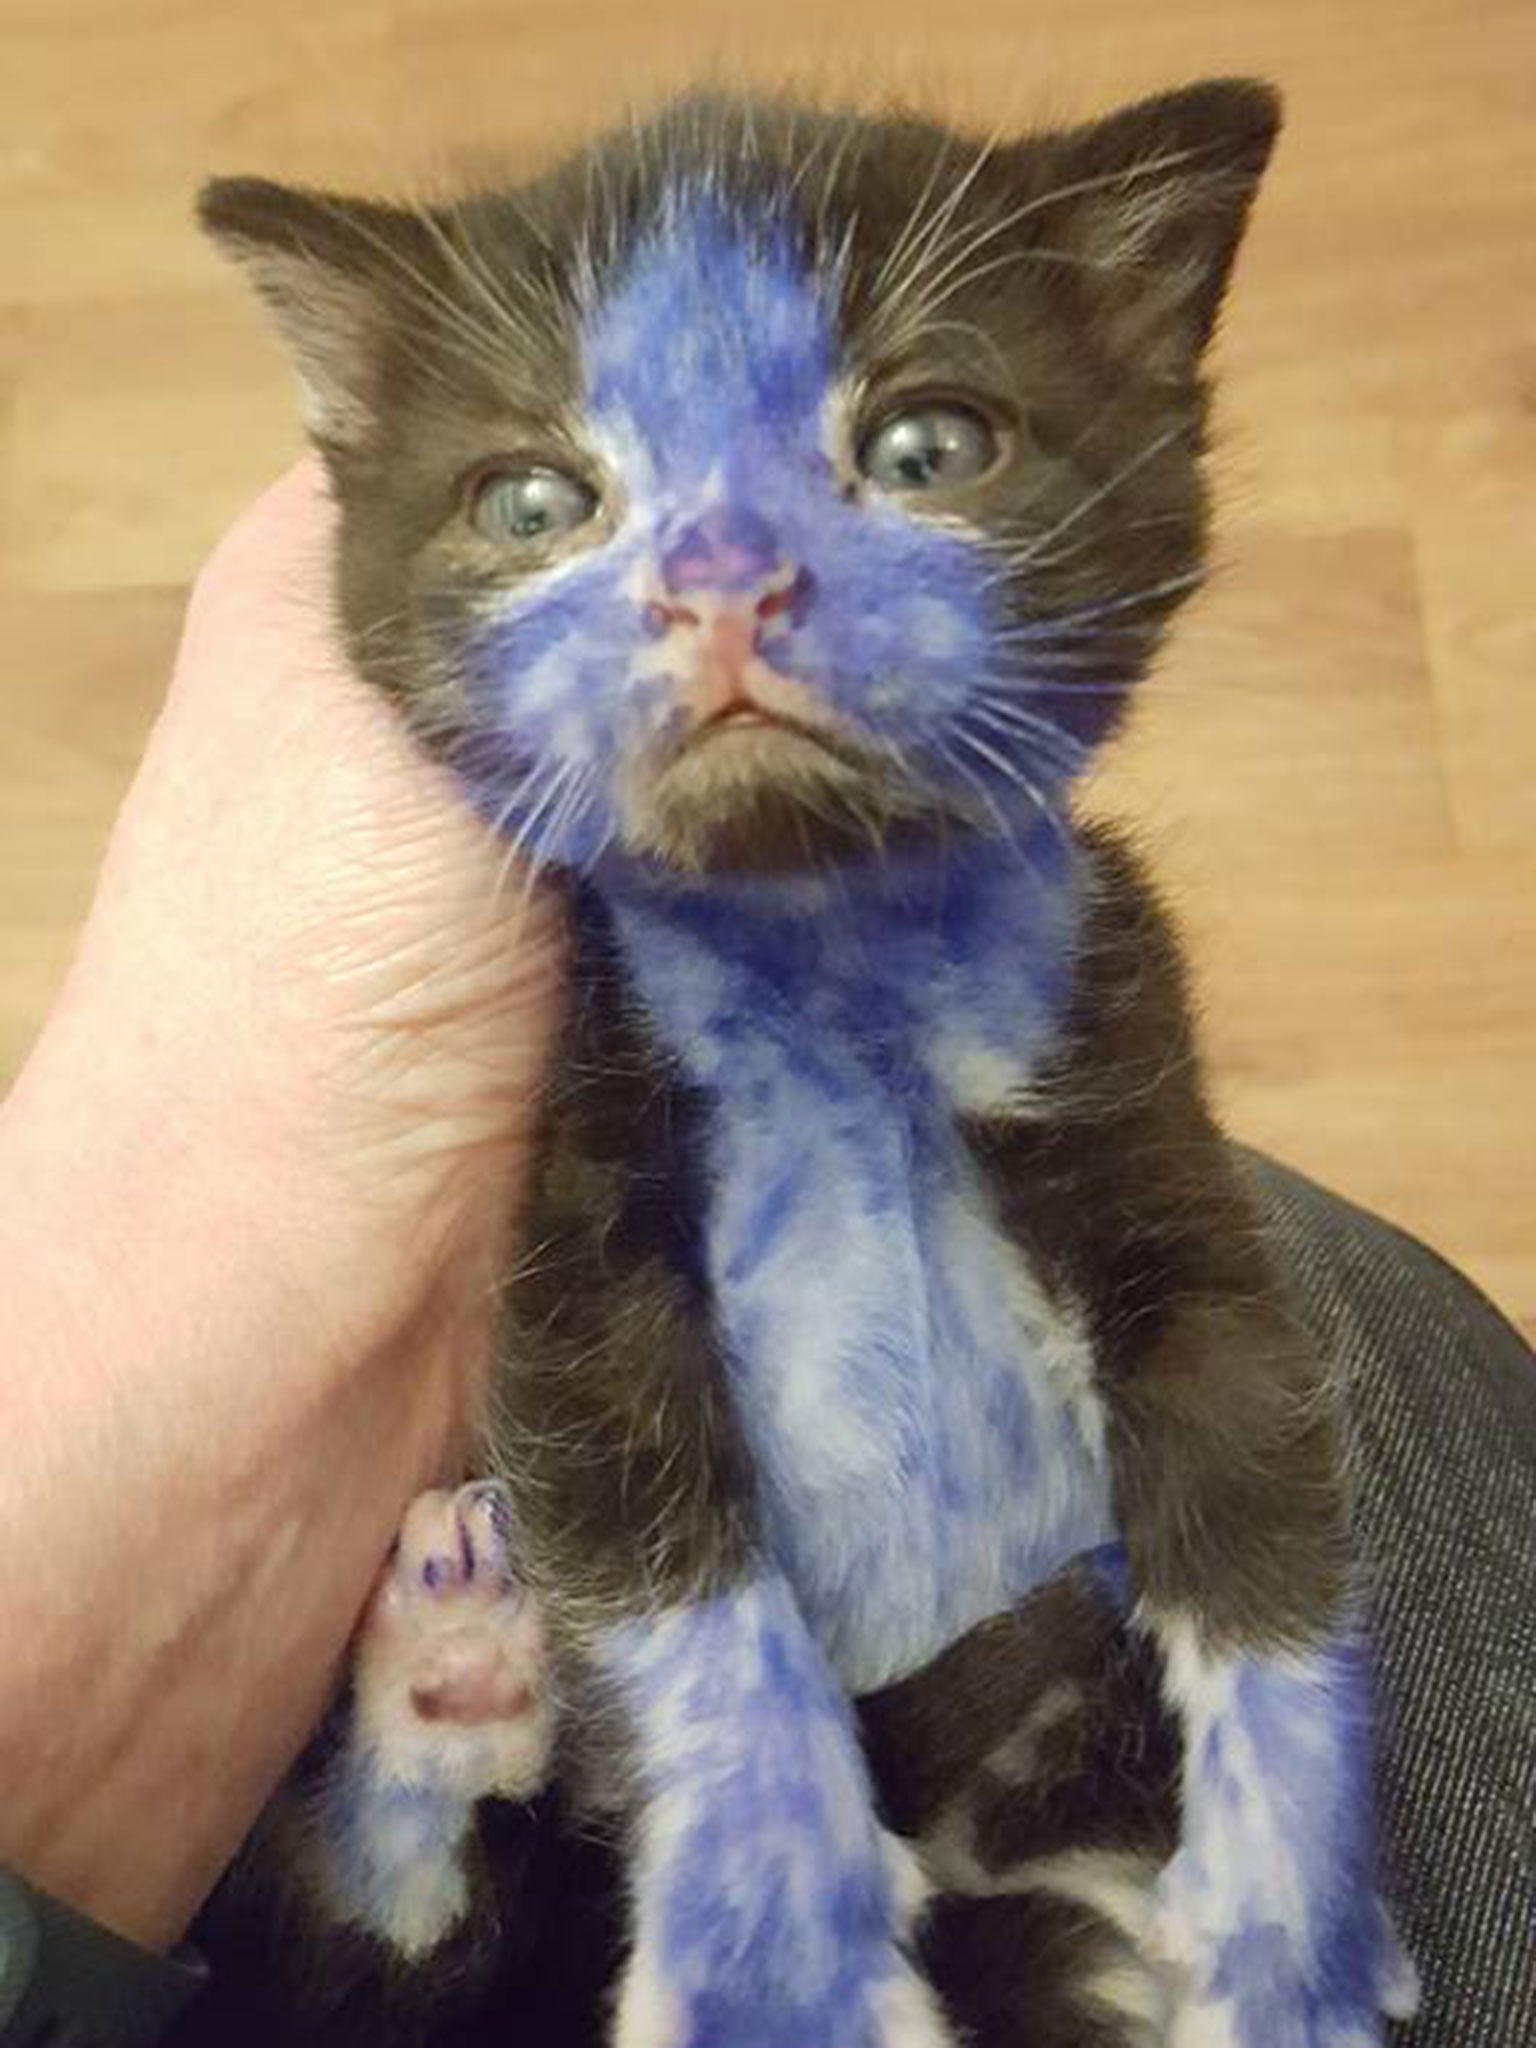 kittens coloured in with permanent marker in dreadful act of